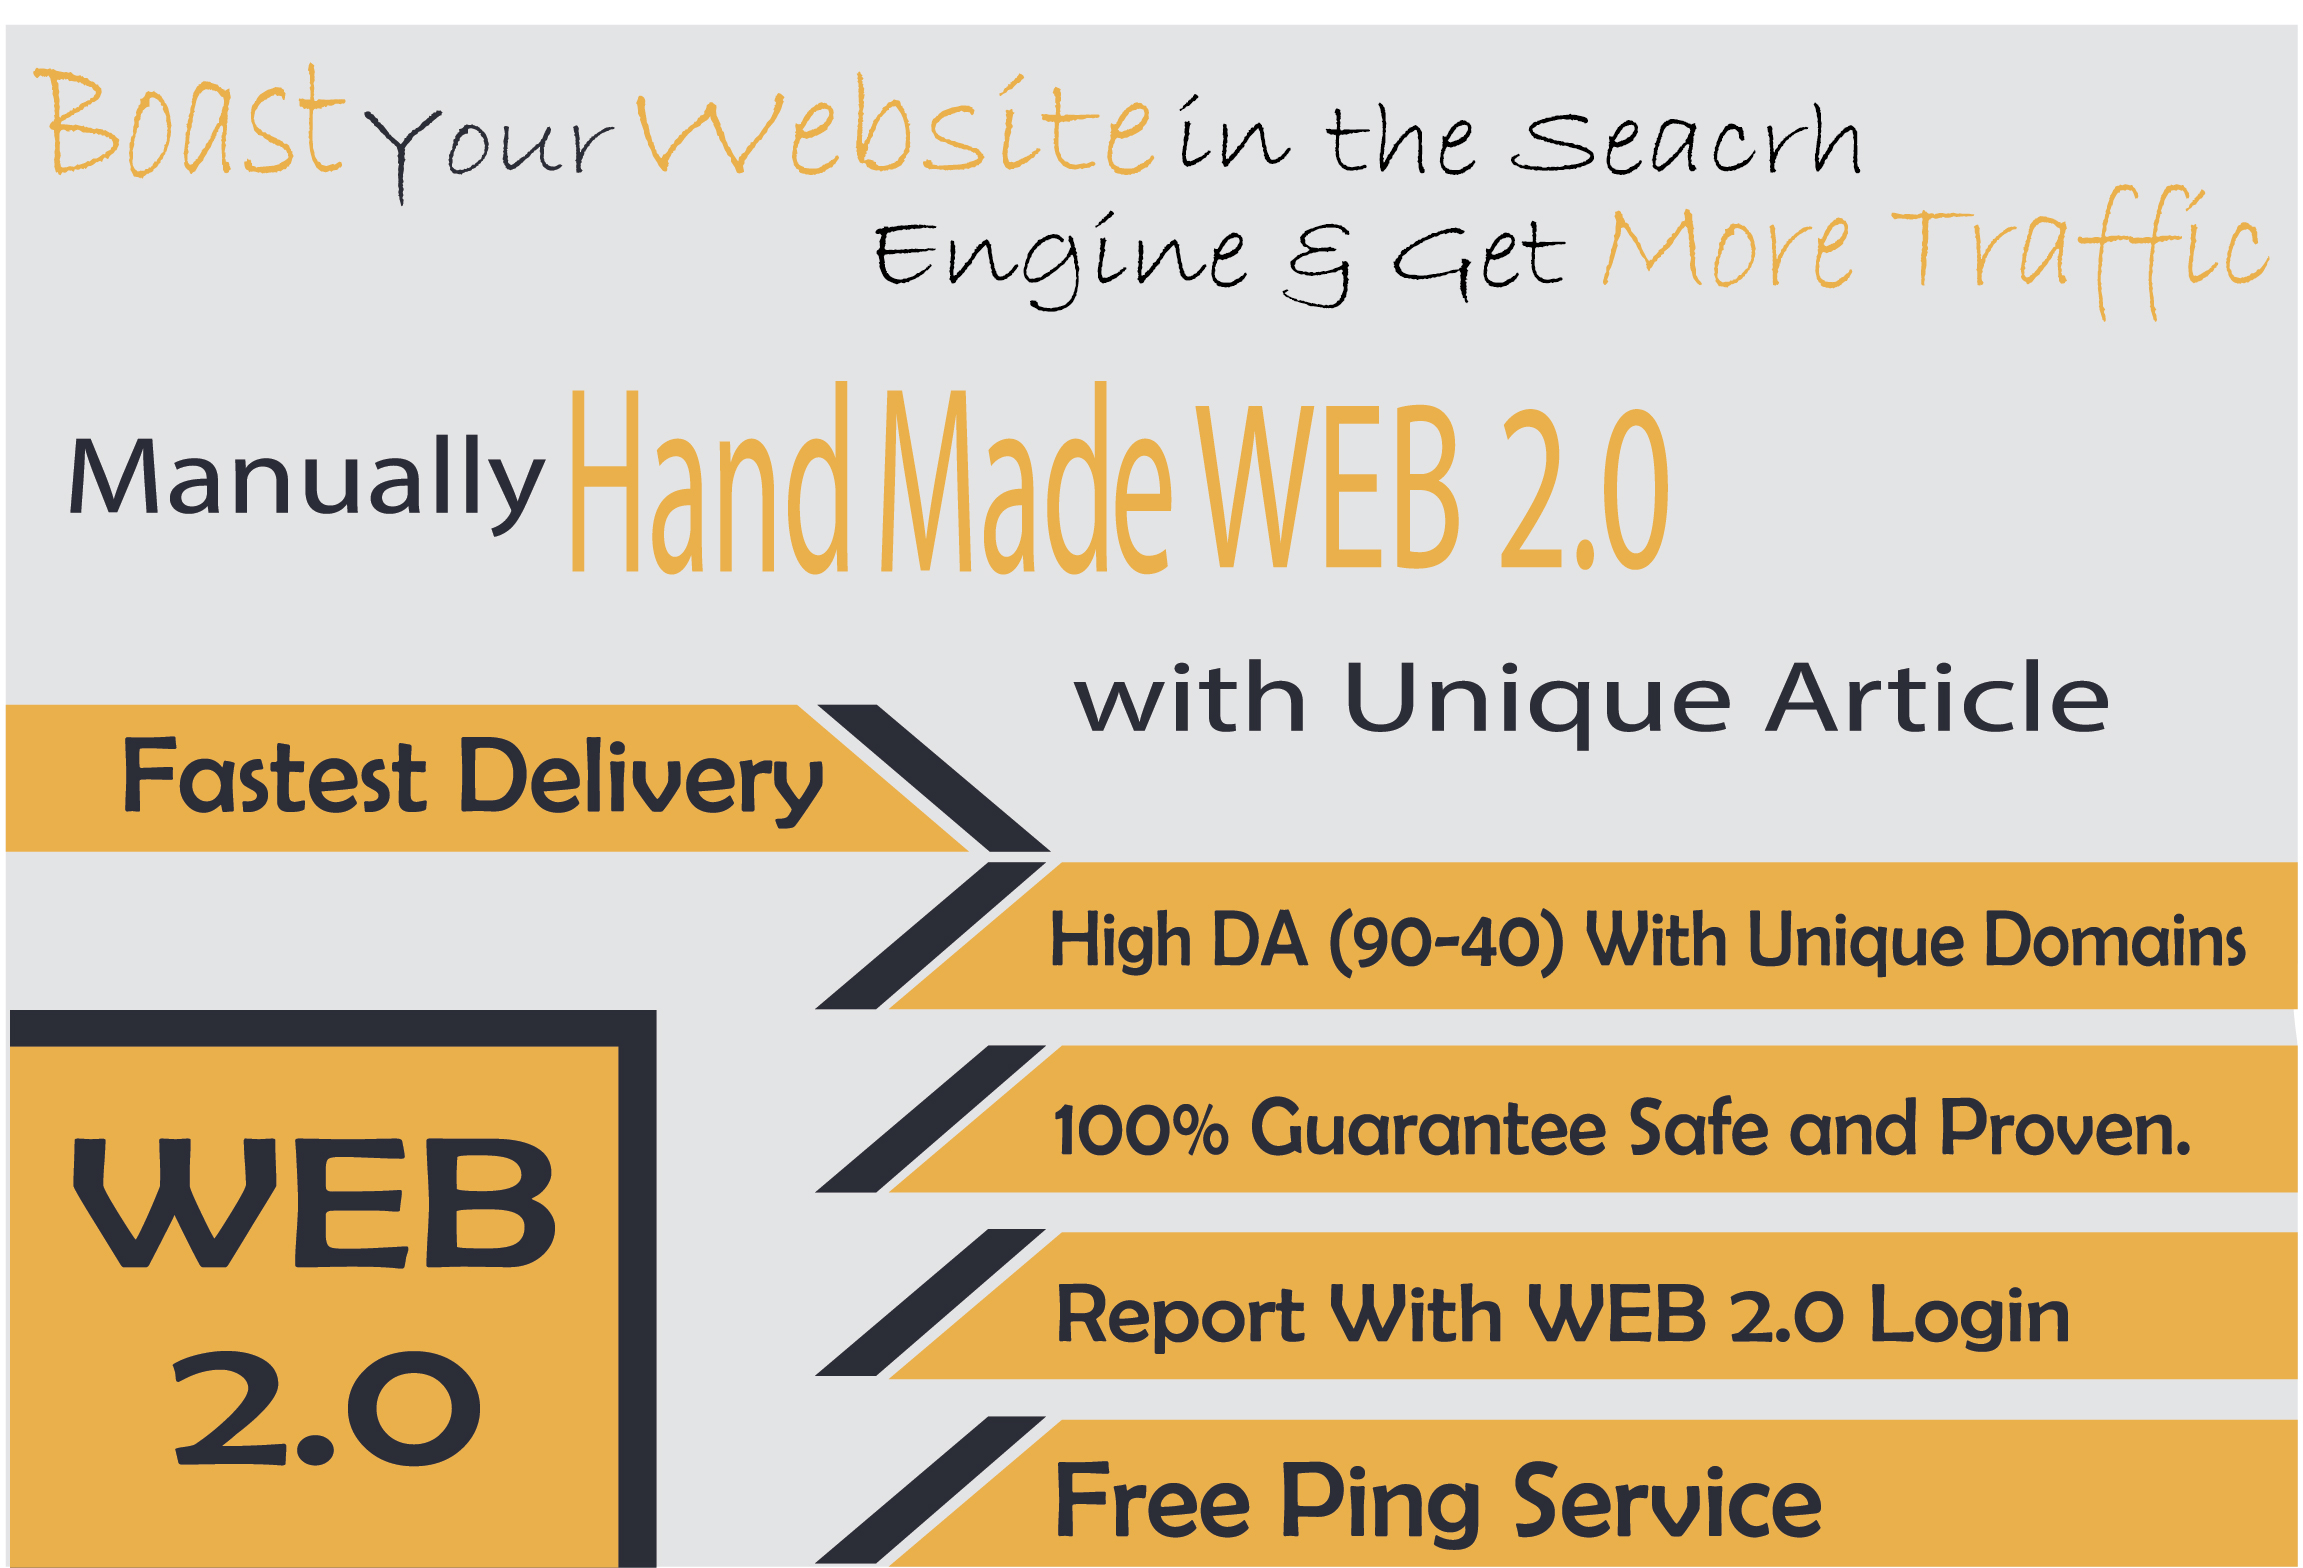 Manually Create Hand Made 25 Web 2.0 Subbmission With High DA 90-40